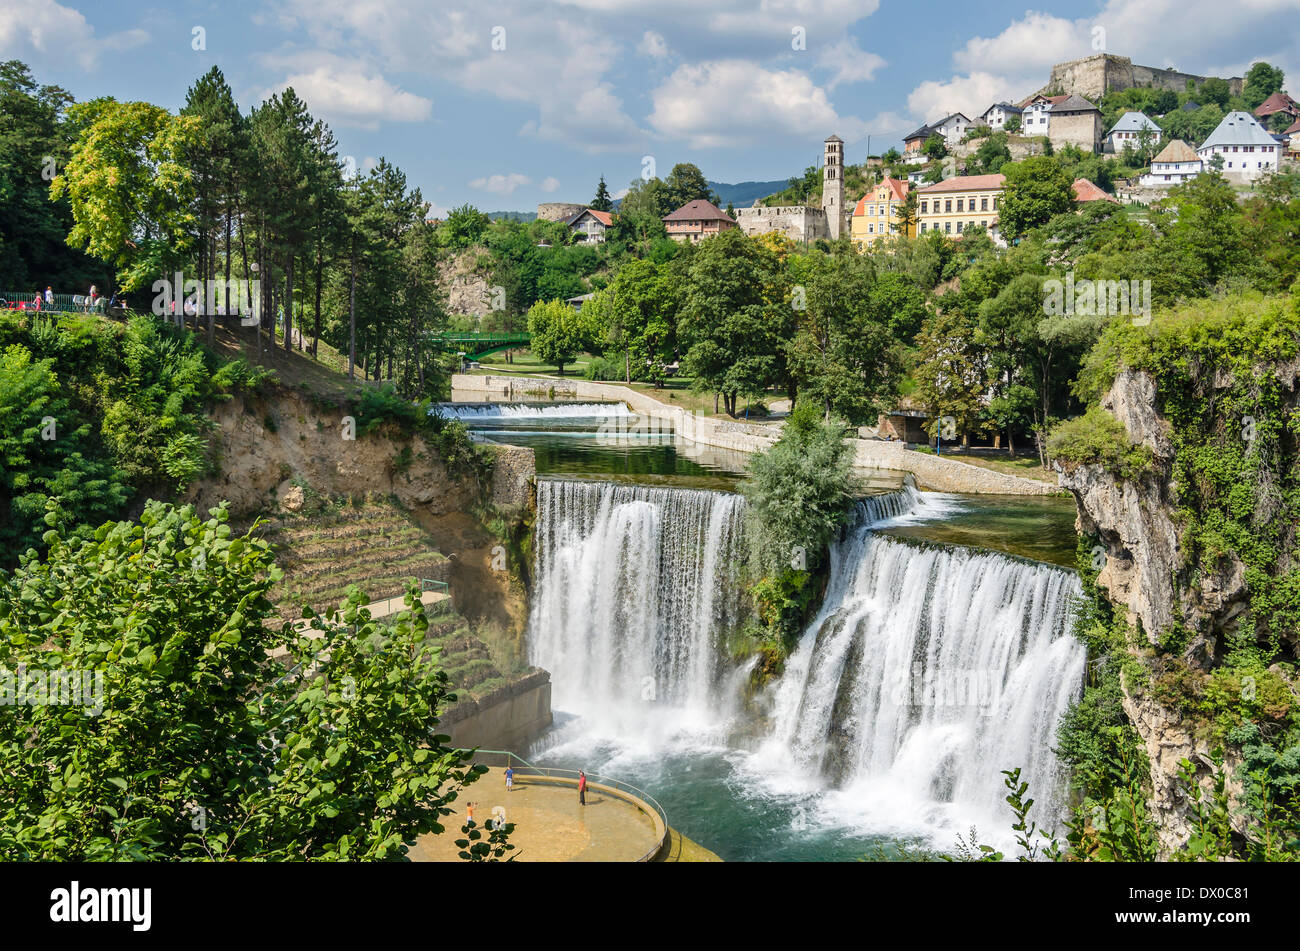 Waterfall in Jajce, Bosnia Stock Photo